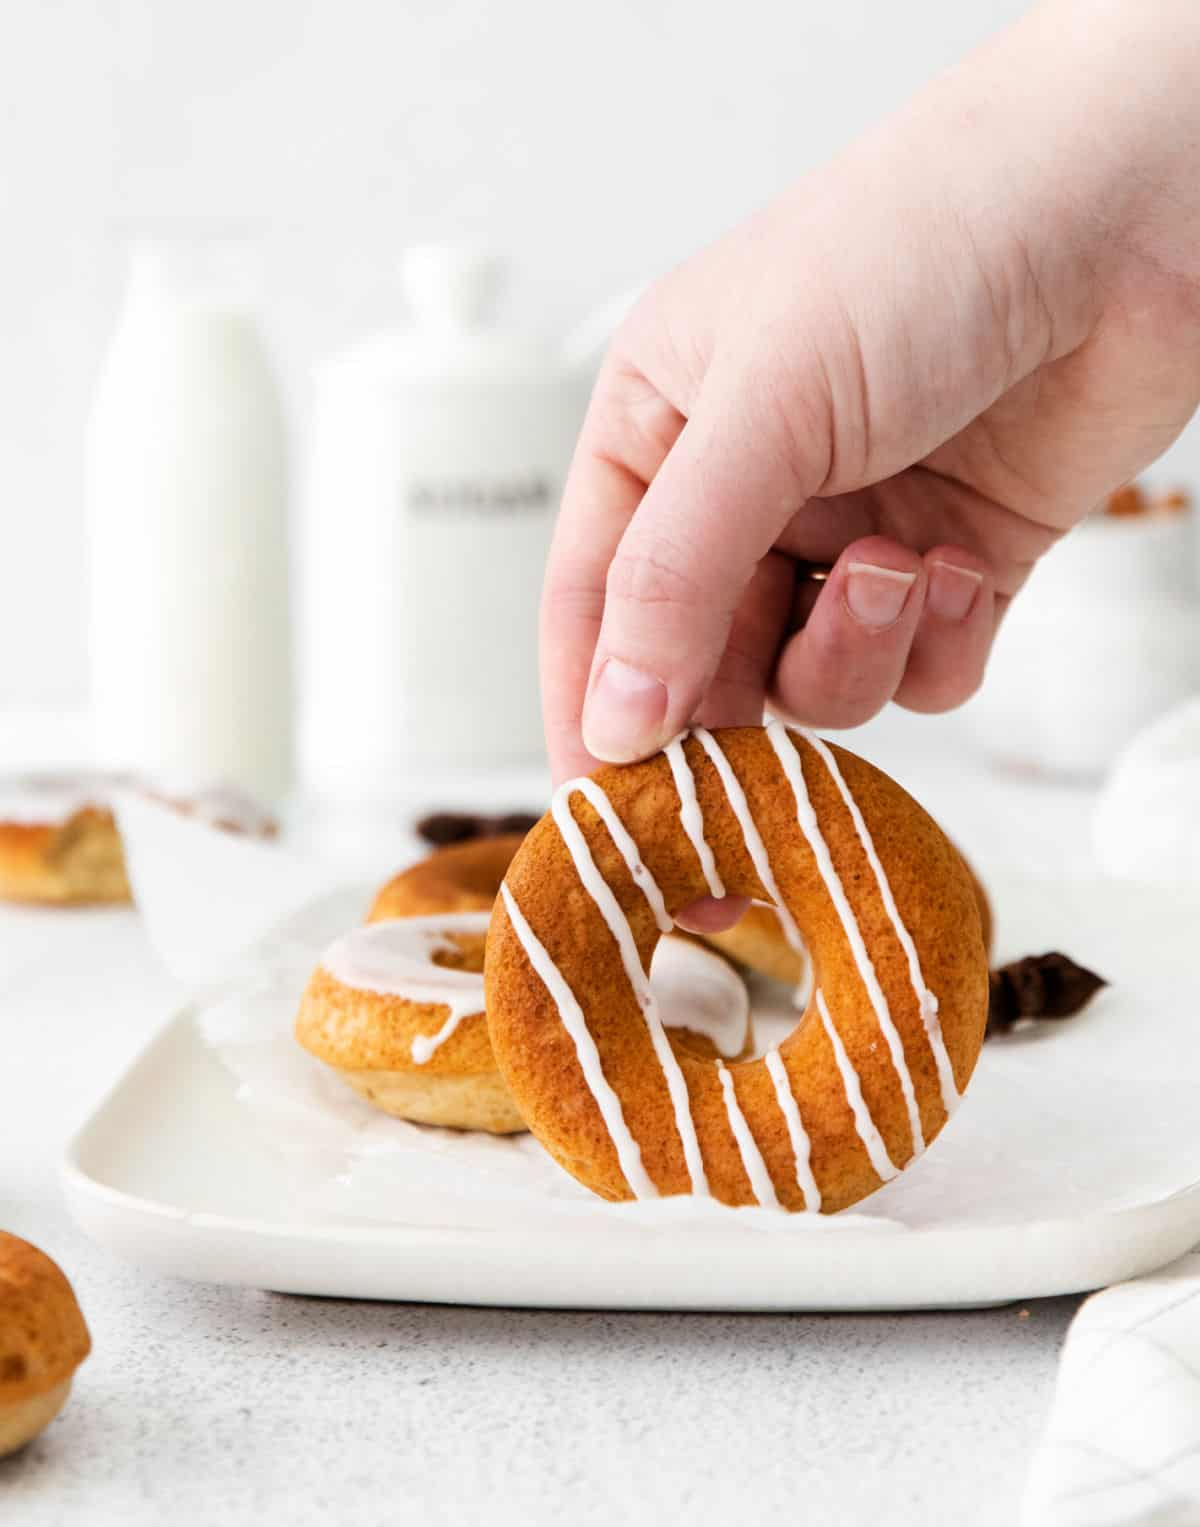 Chai donut with vanilla icing drizzled and a hand picking it up.